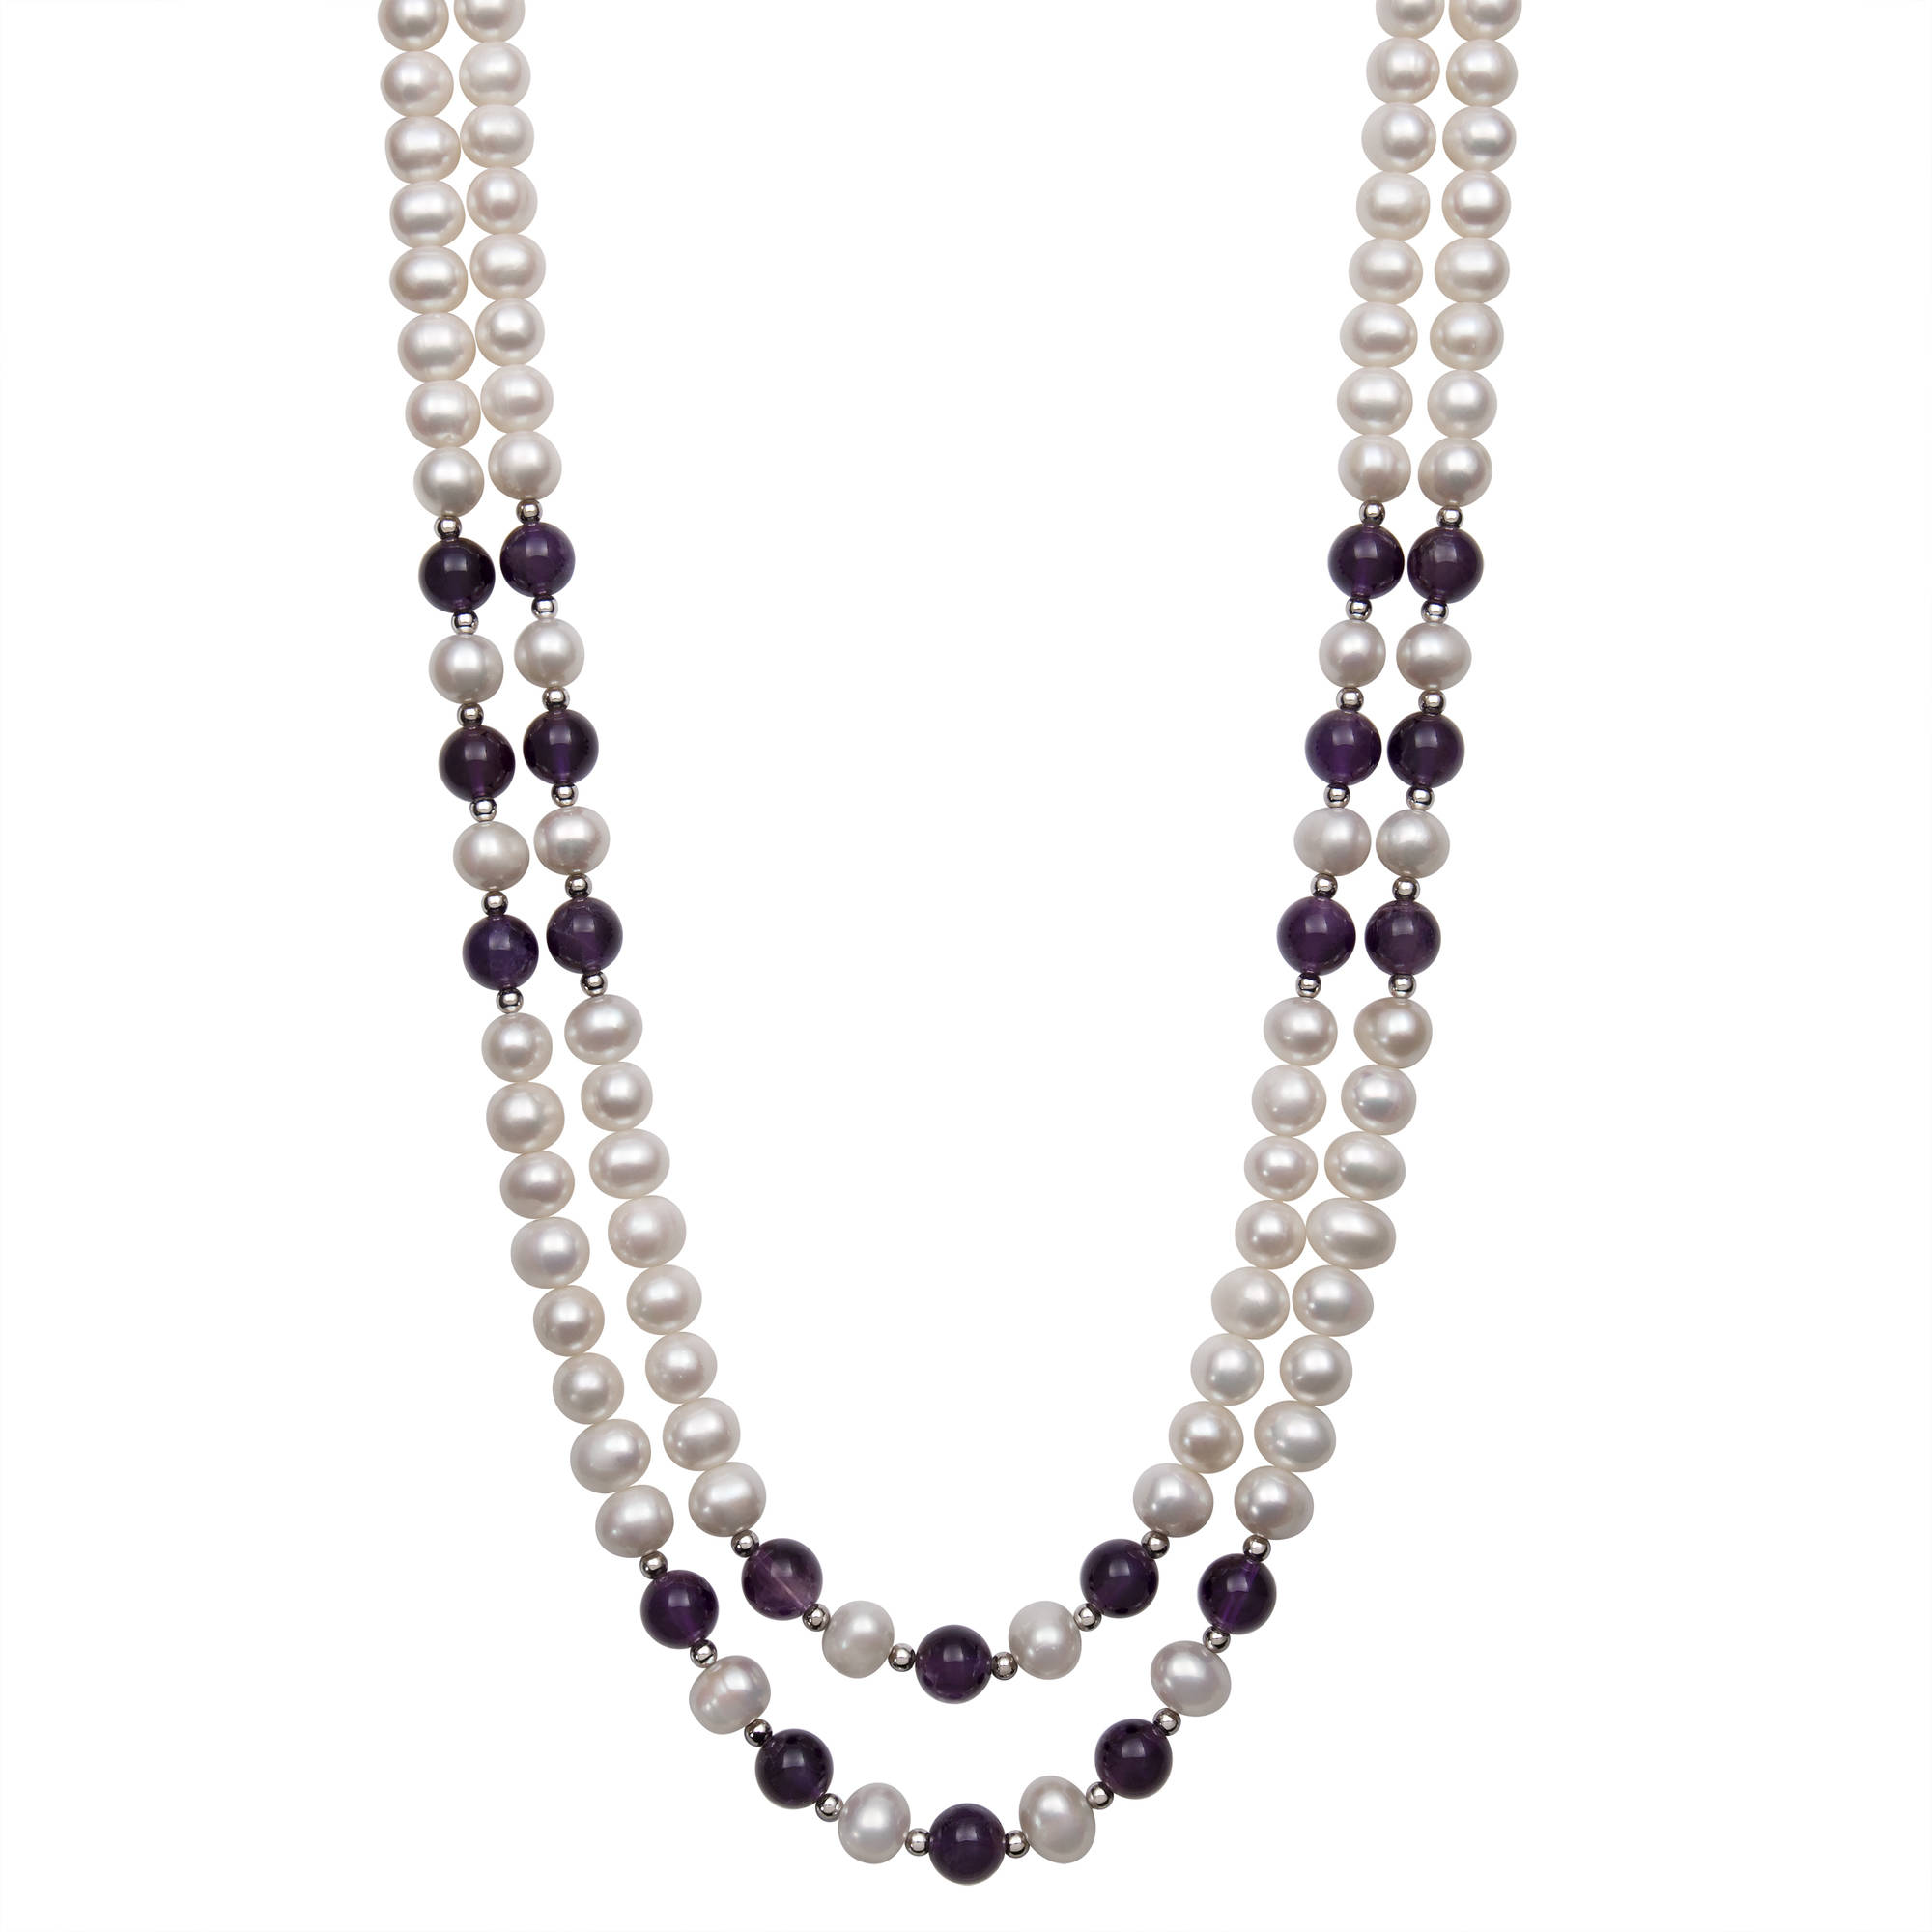 "7-8mm Cultured Freshwater Pearl and 8mm Amethyst 2-Row Necklace with Sterling Silver Accent Beads, 17"" 19"" by China Pearl"